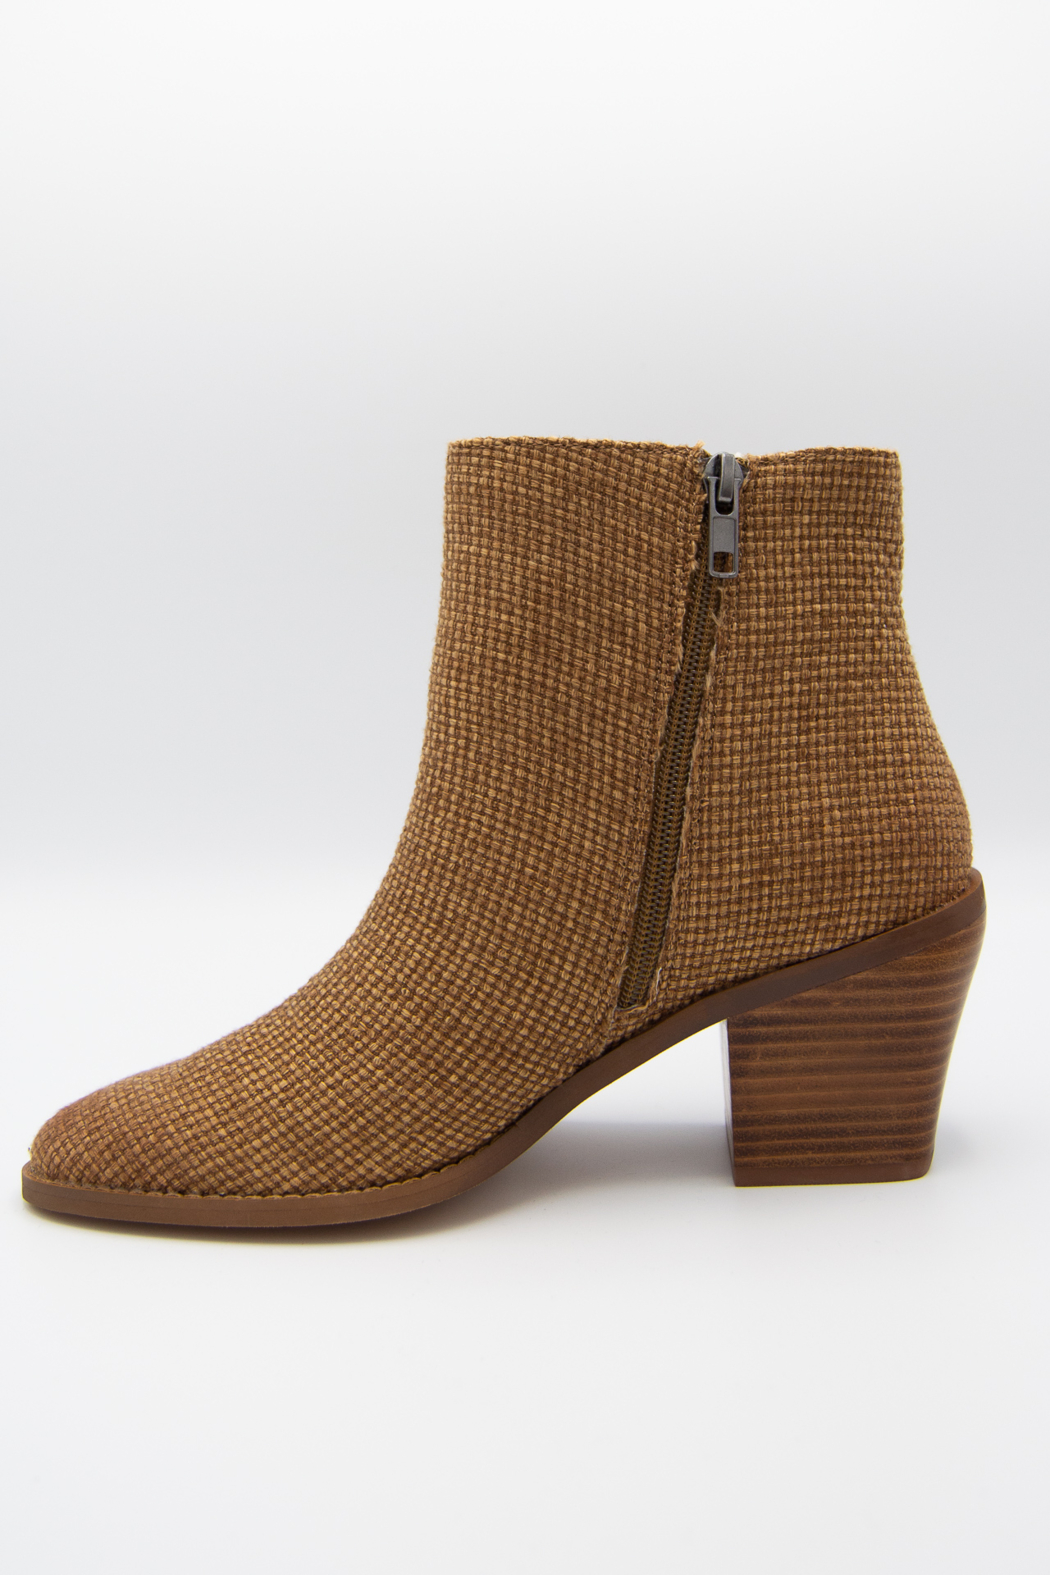 Band Of Gypsies Loveland Woven Jute Canvas Booties - Side Cropped Image